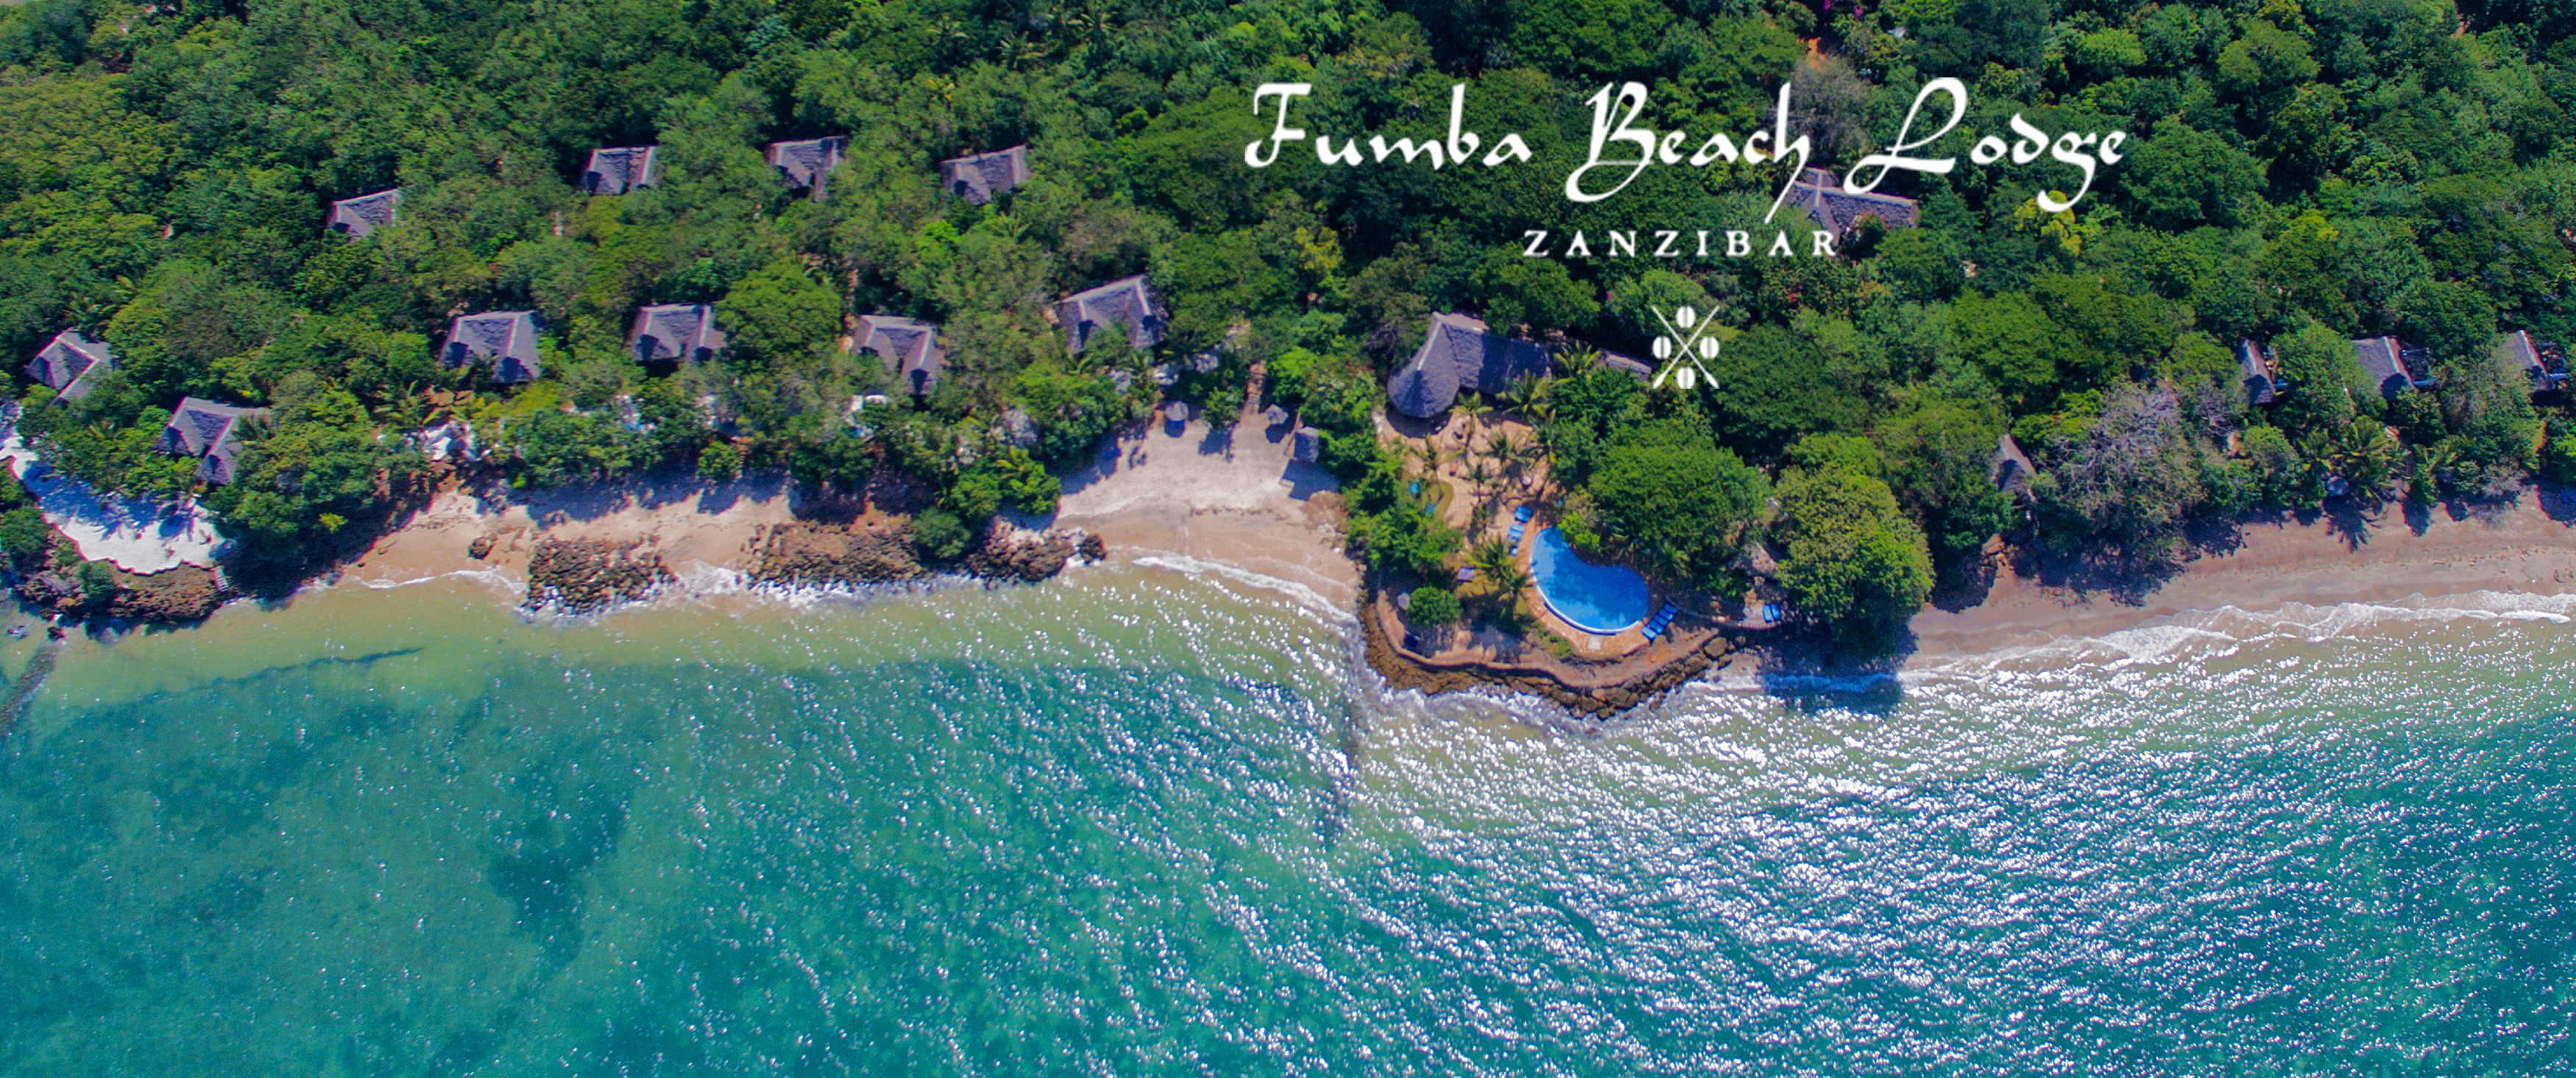 Fumba Beach Lodge From the Sky